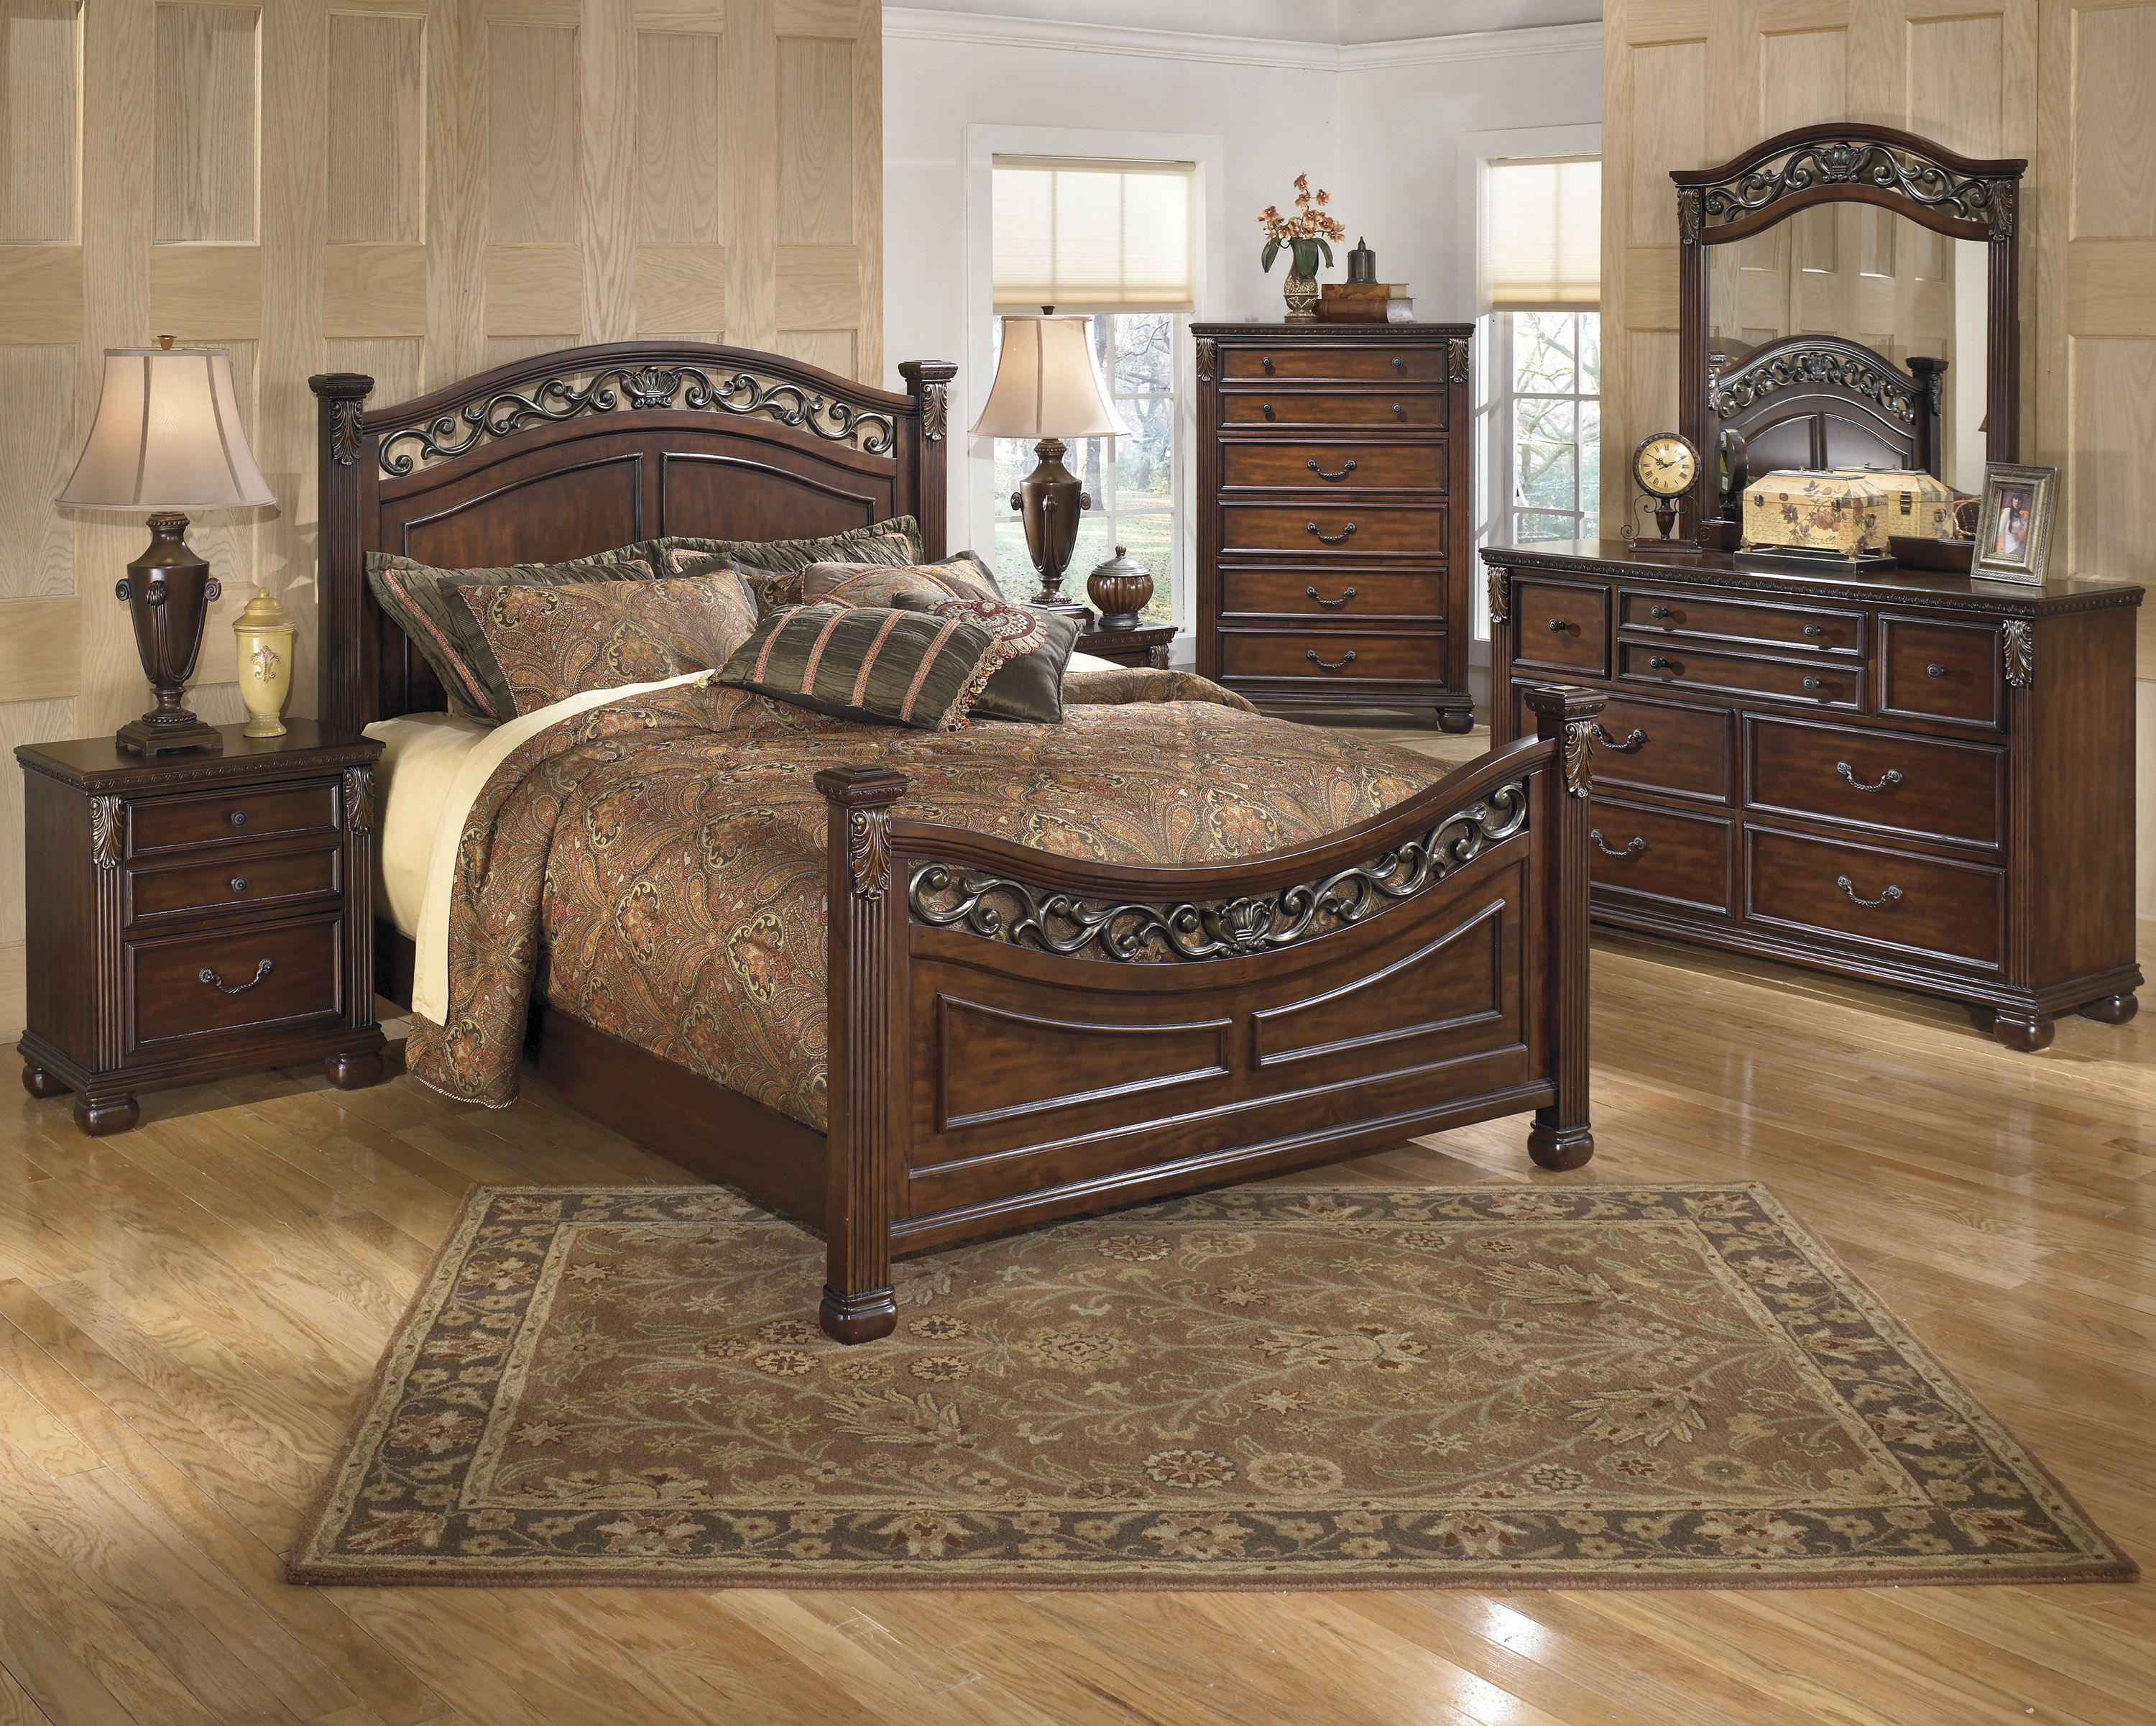 Ashley Furniture Leahlyn Master Bedroom Set The Classy Home: no dresser in master bedroom